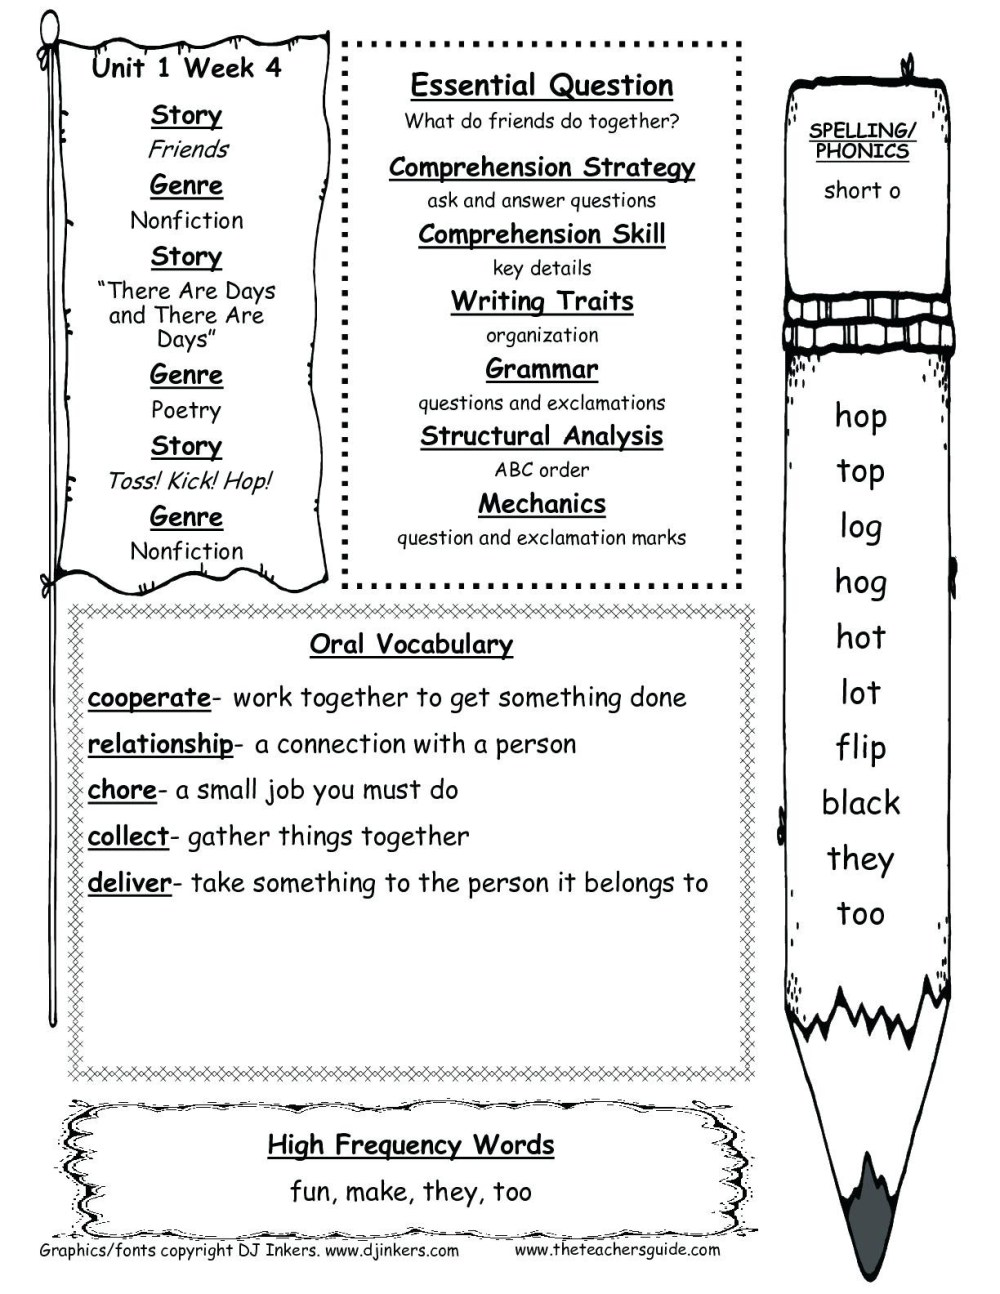 medium resolution of 3 Free Math Worksheets Second Grade 2 Skip Counting Skip Counting by 3 -  apocalomegaproductions.com